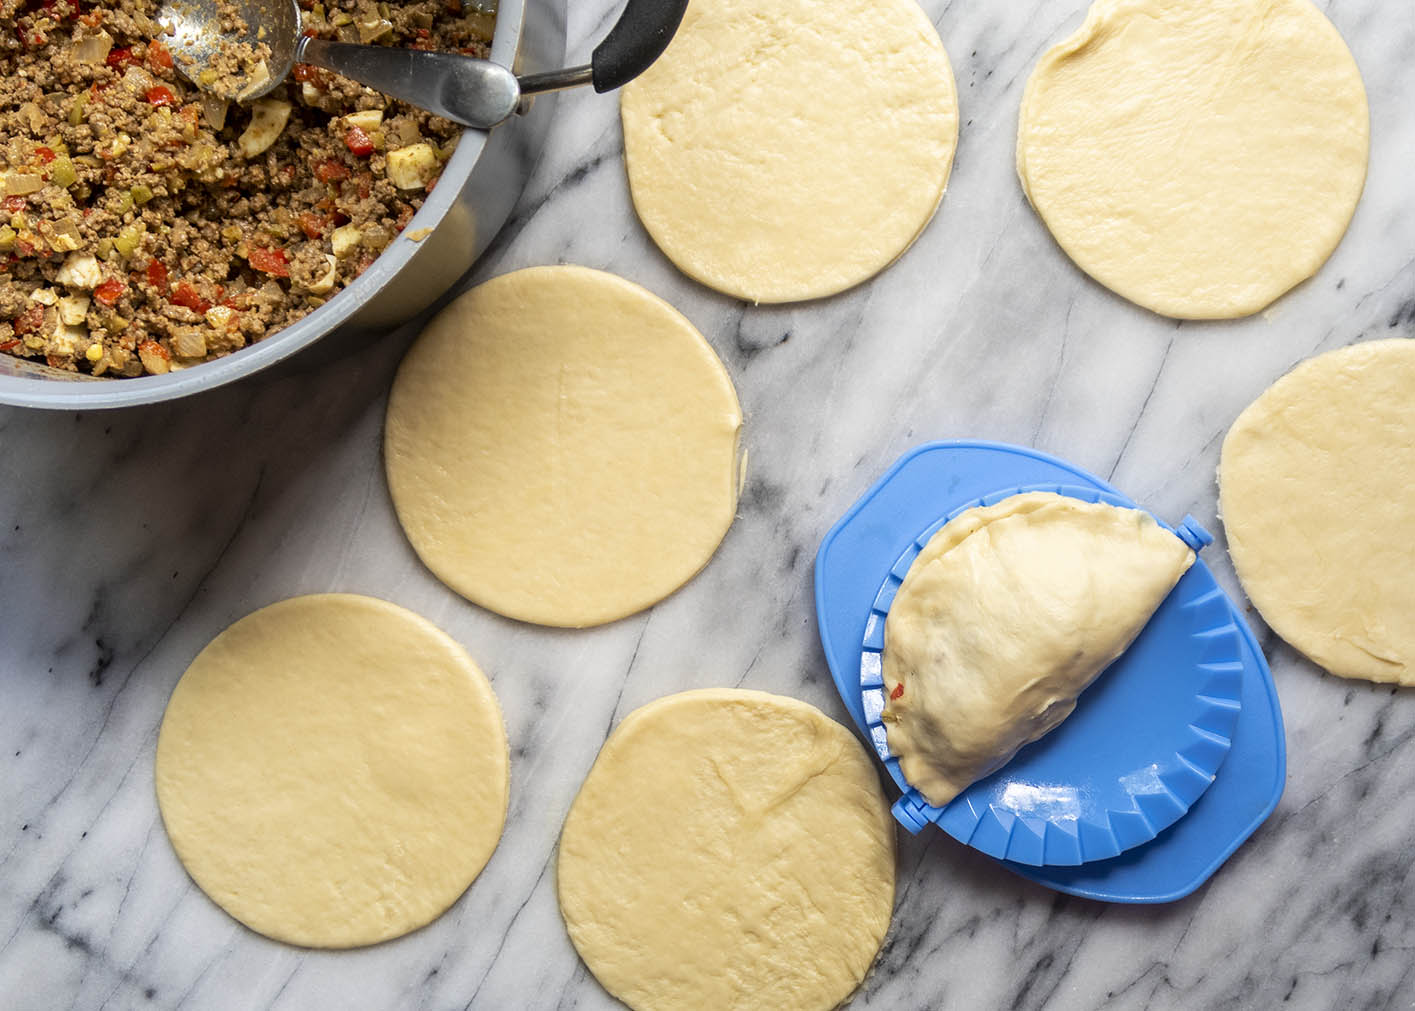 Assembling empanadas with fresh dough and meat filling